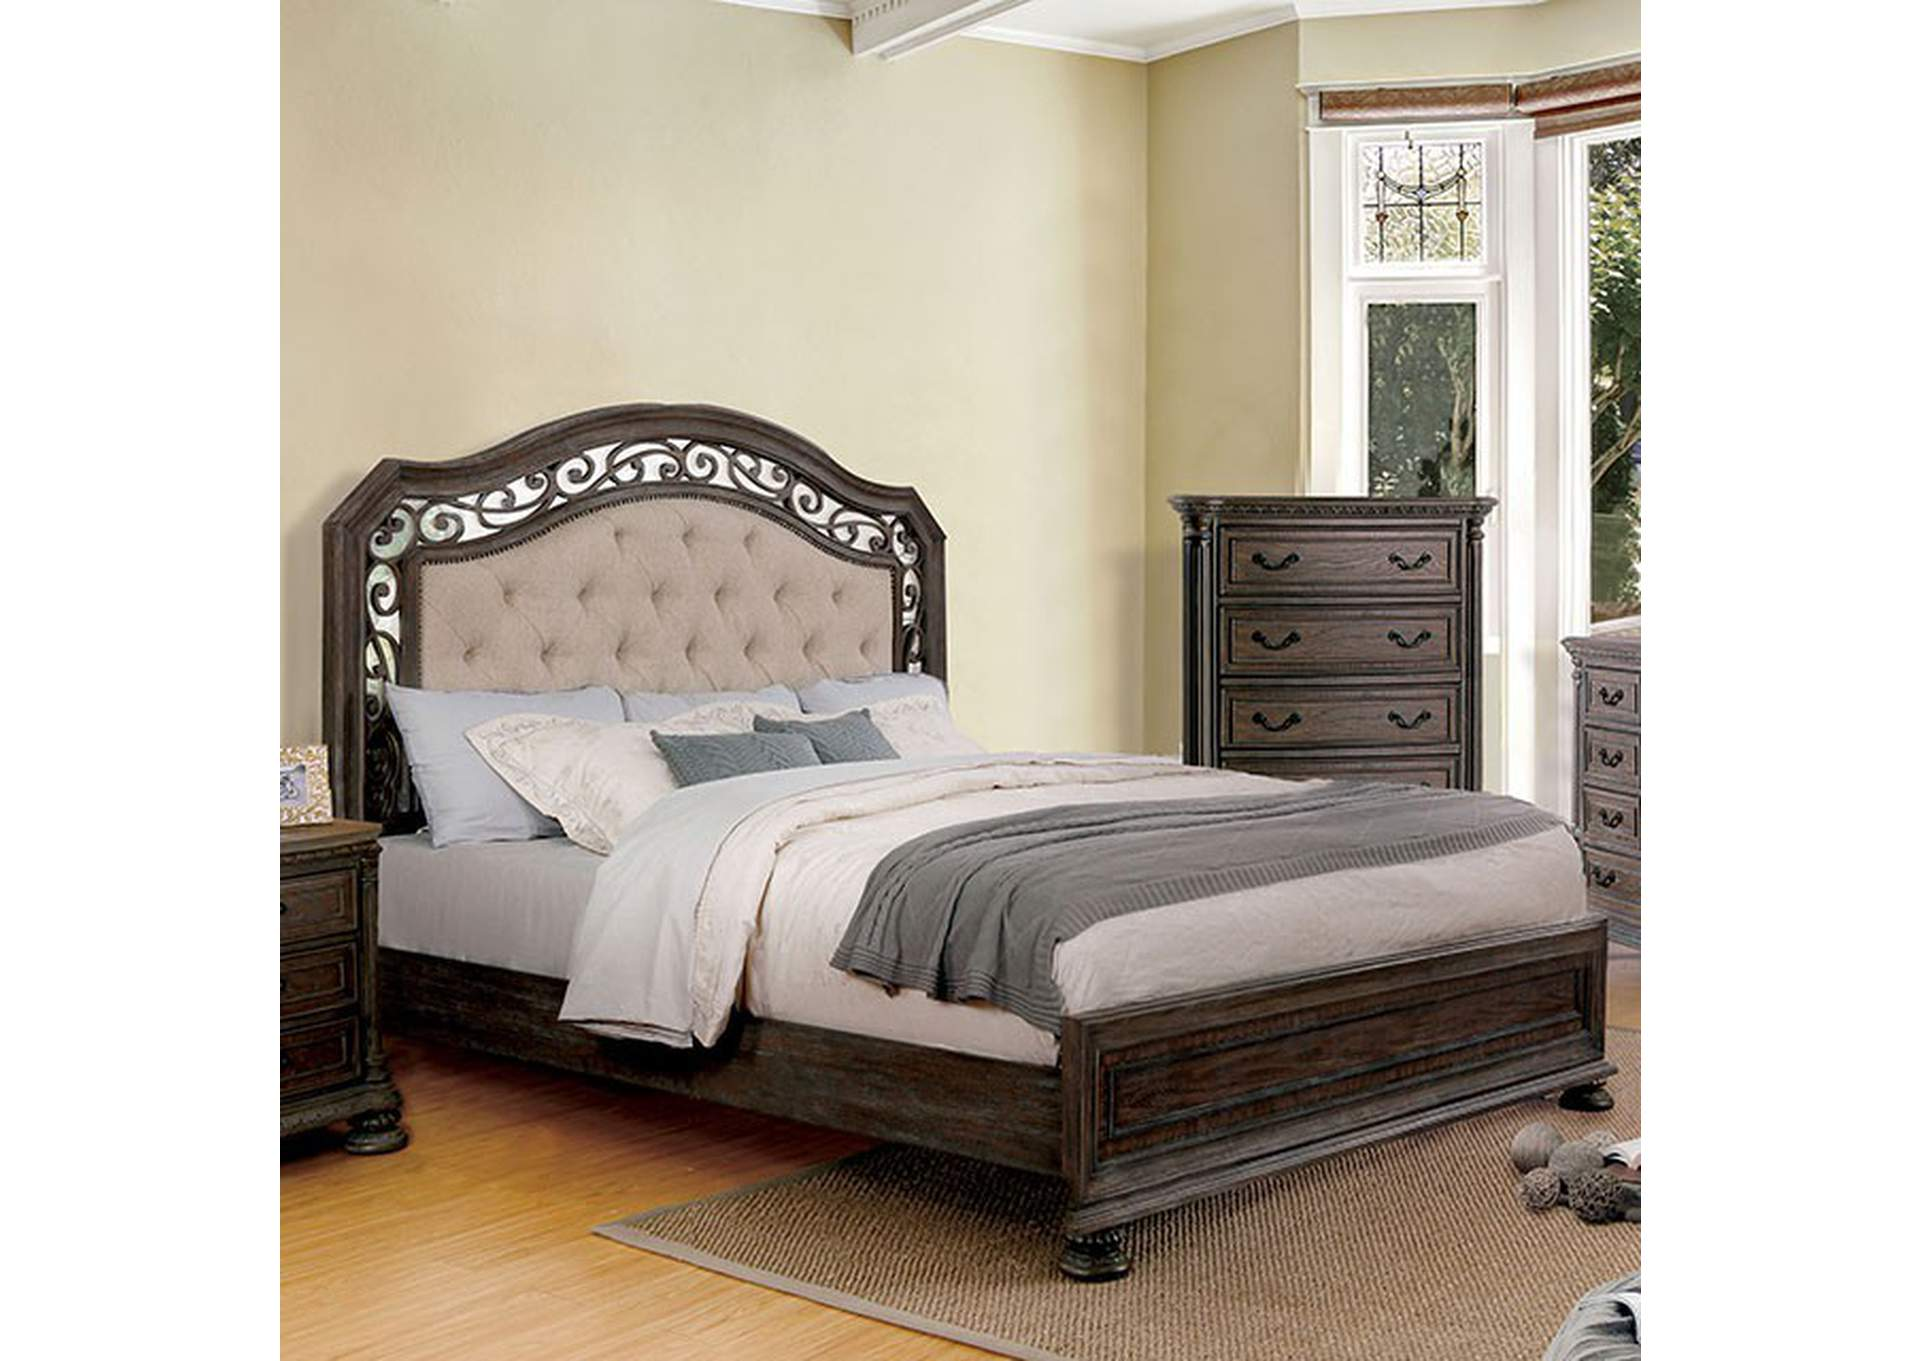 Persephone Rustic Natural Upholstered Platform Queen Bed,Furniture of America